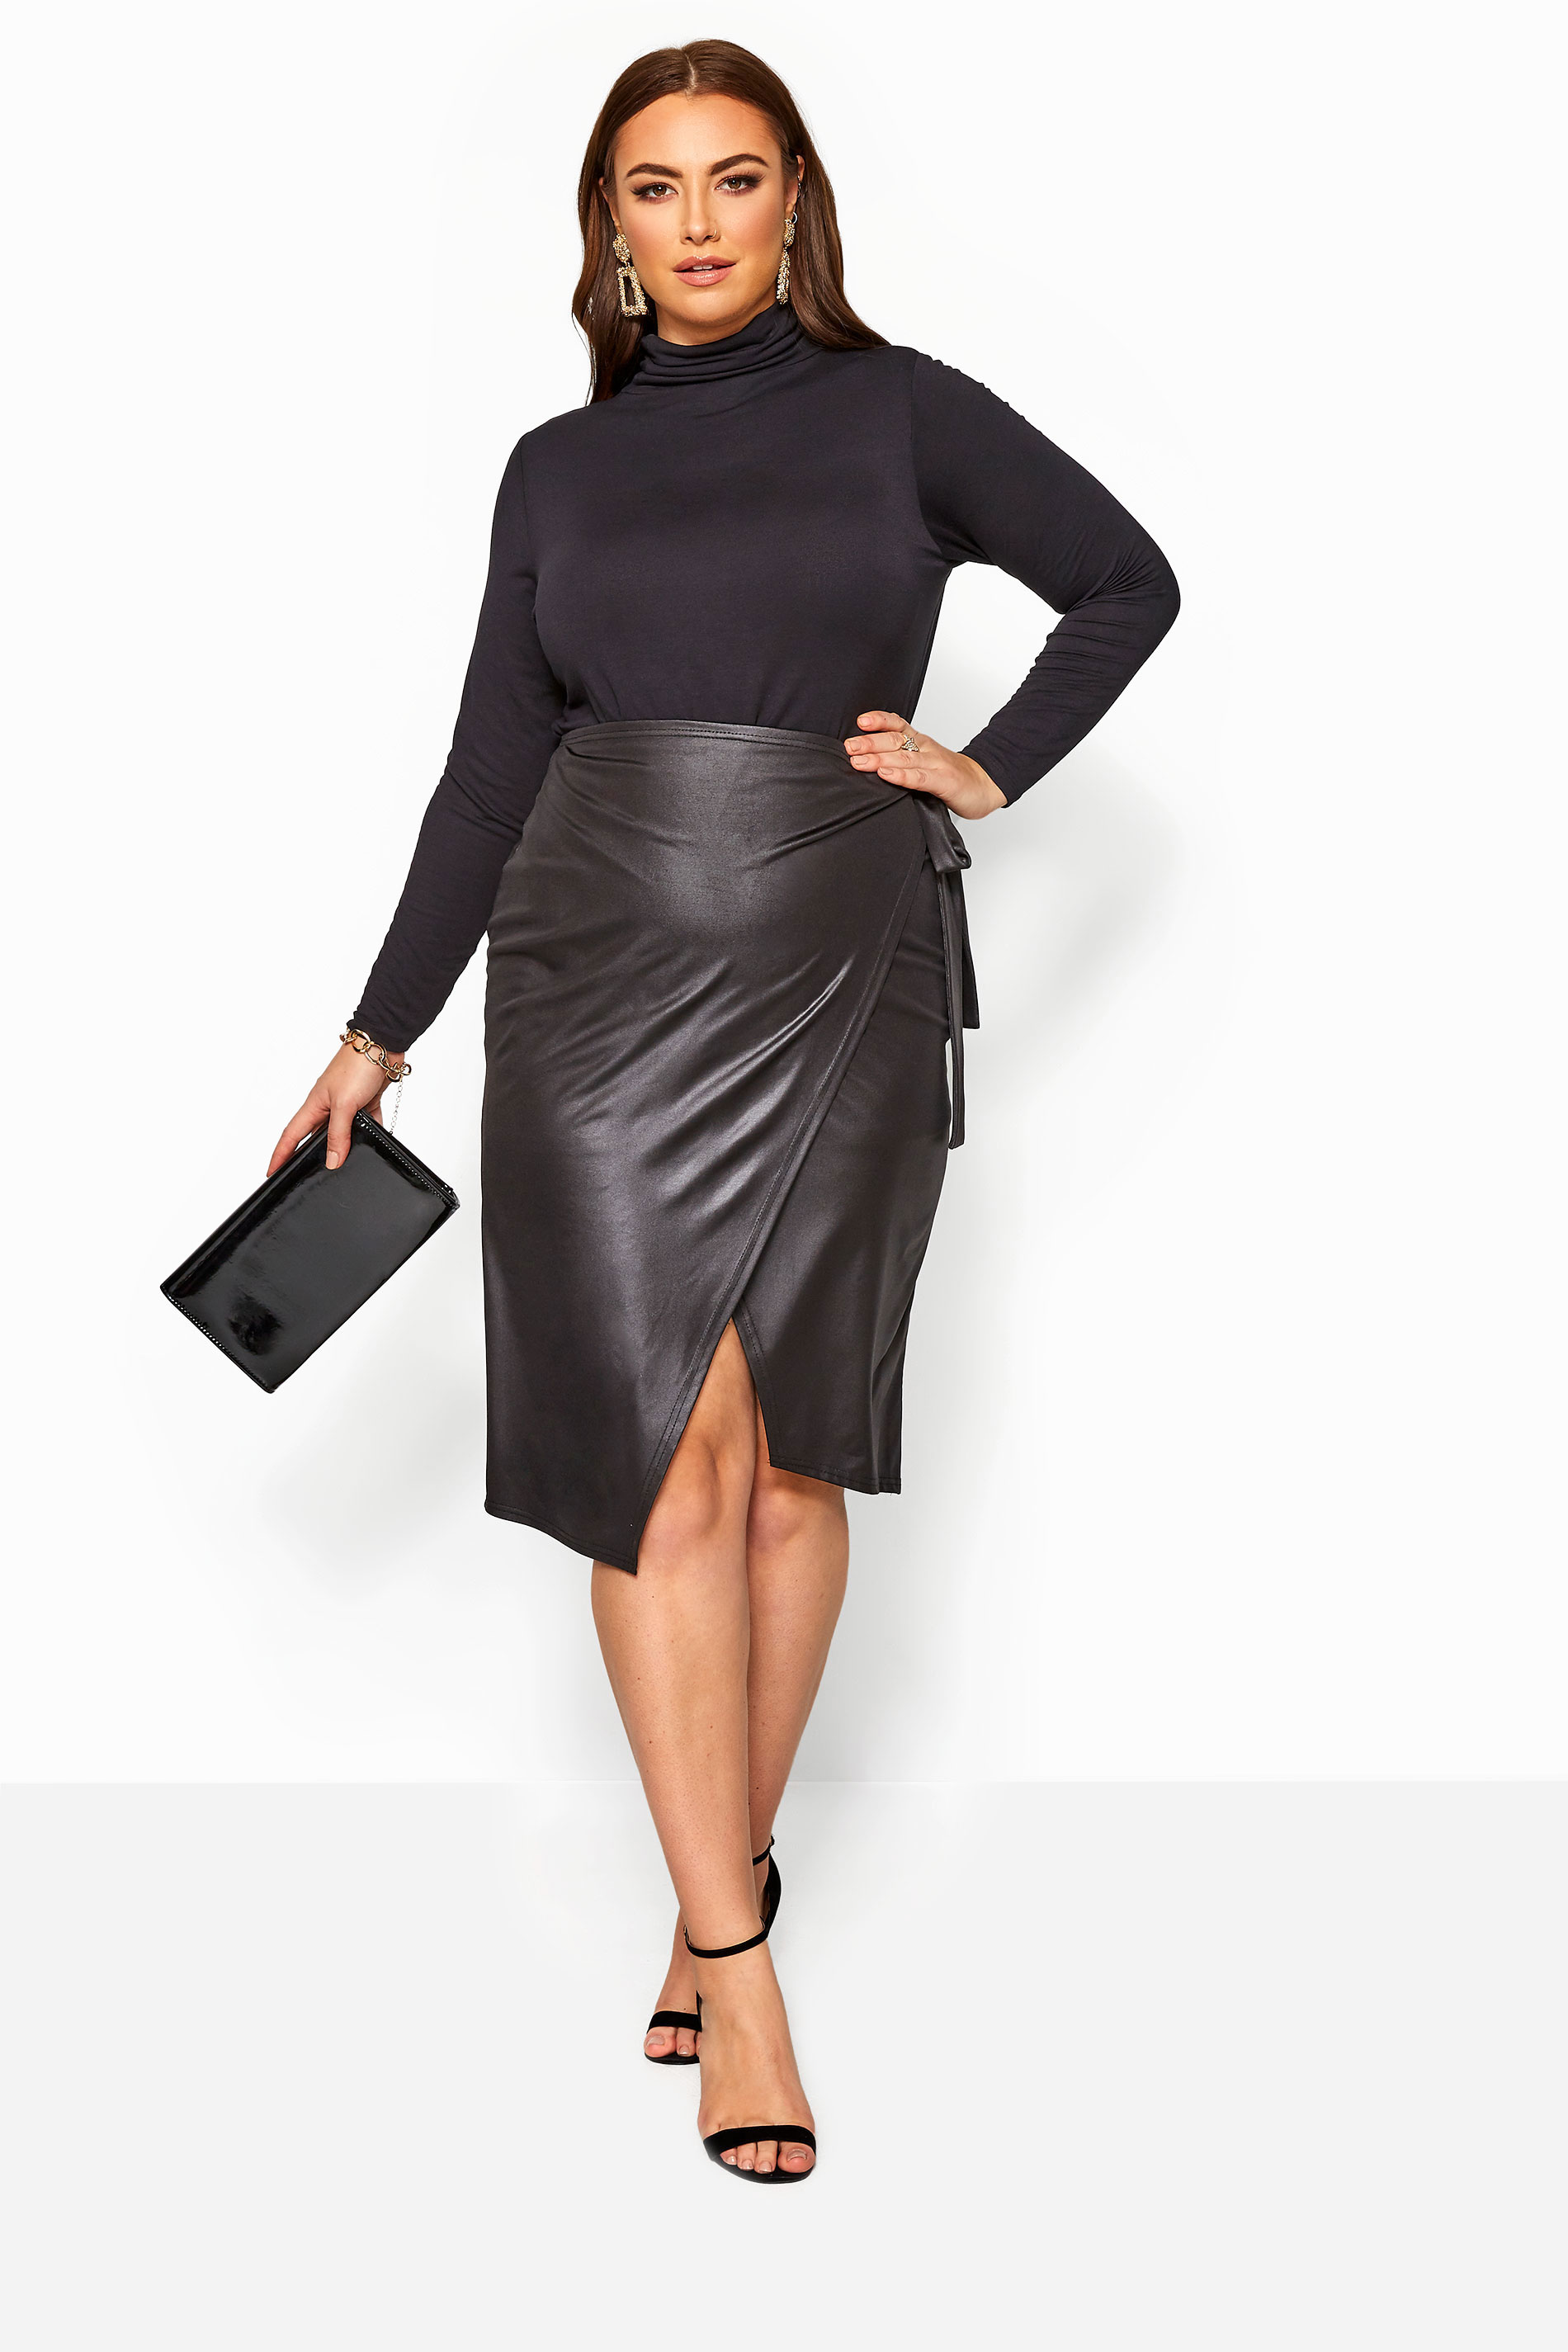 LIMITED COLLECTION Black Leather Look Tie Waist Wrap Skirt